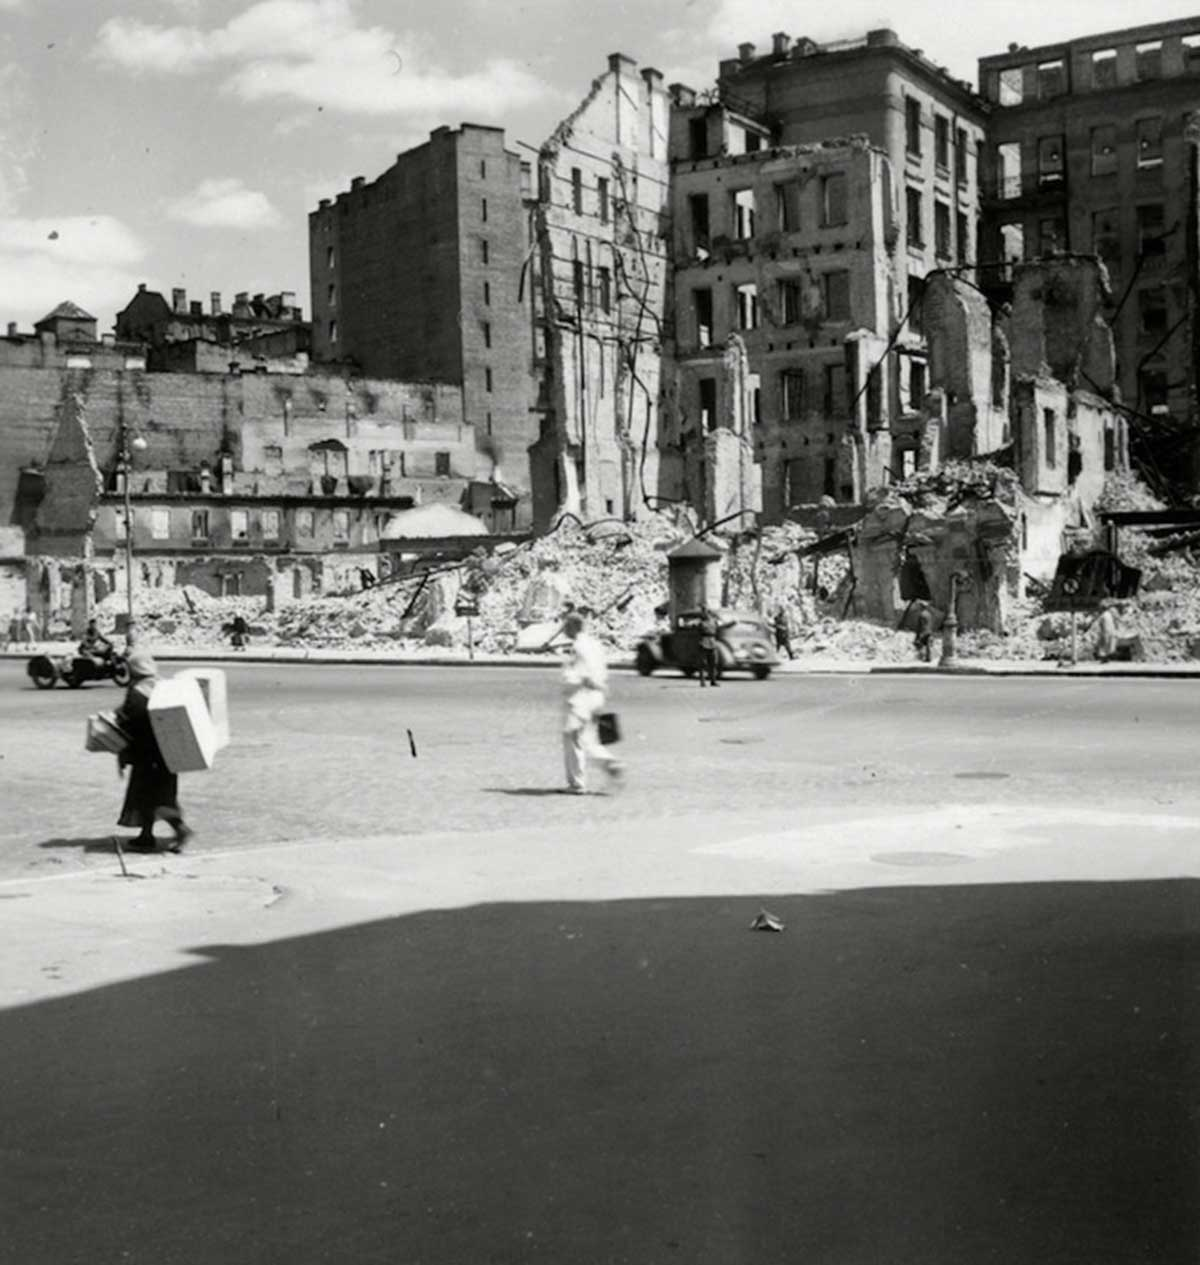 Buildings on ruins. Ukraine, 1943.